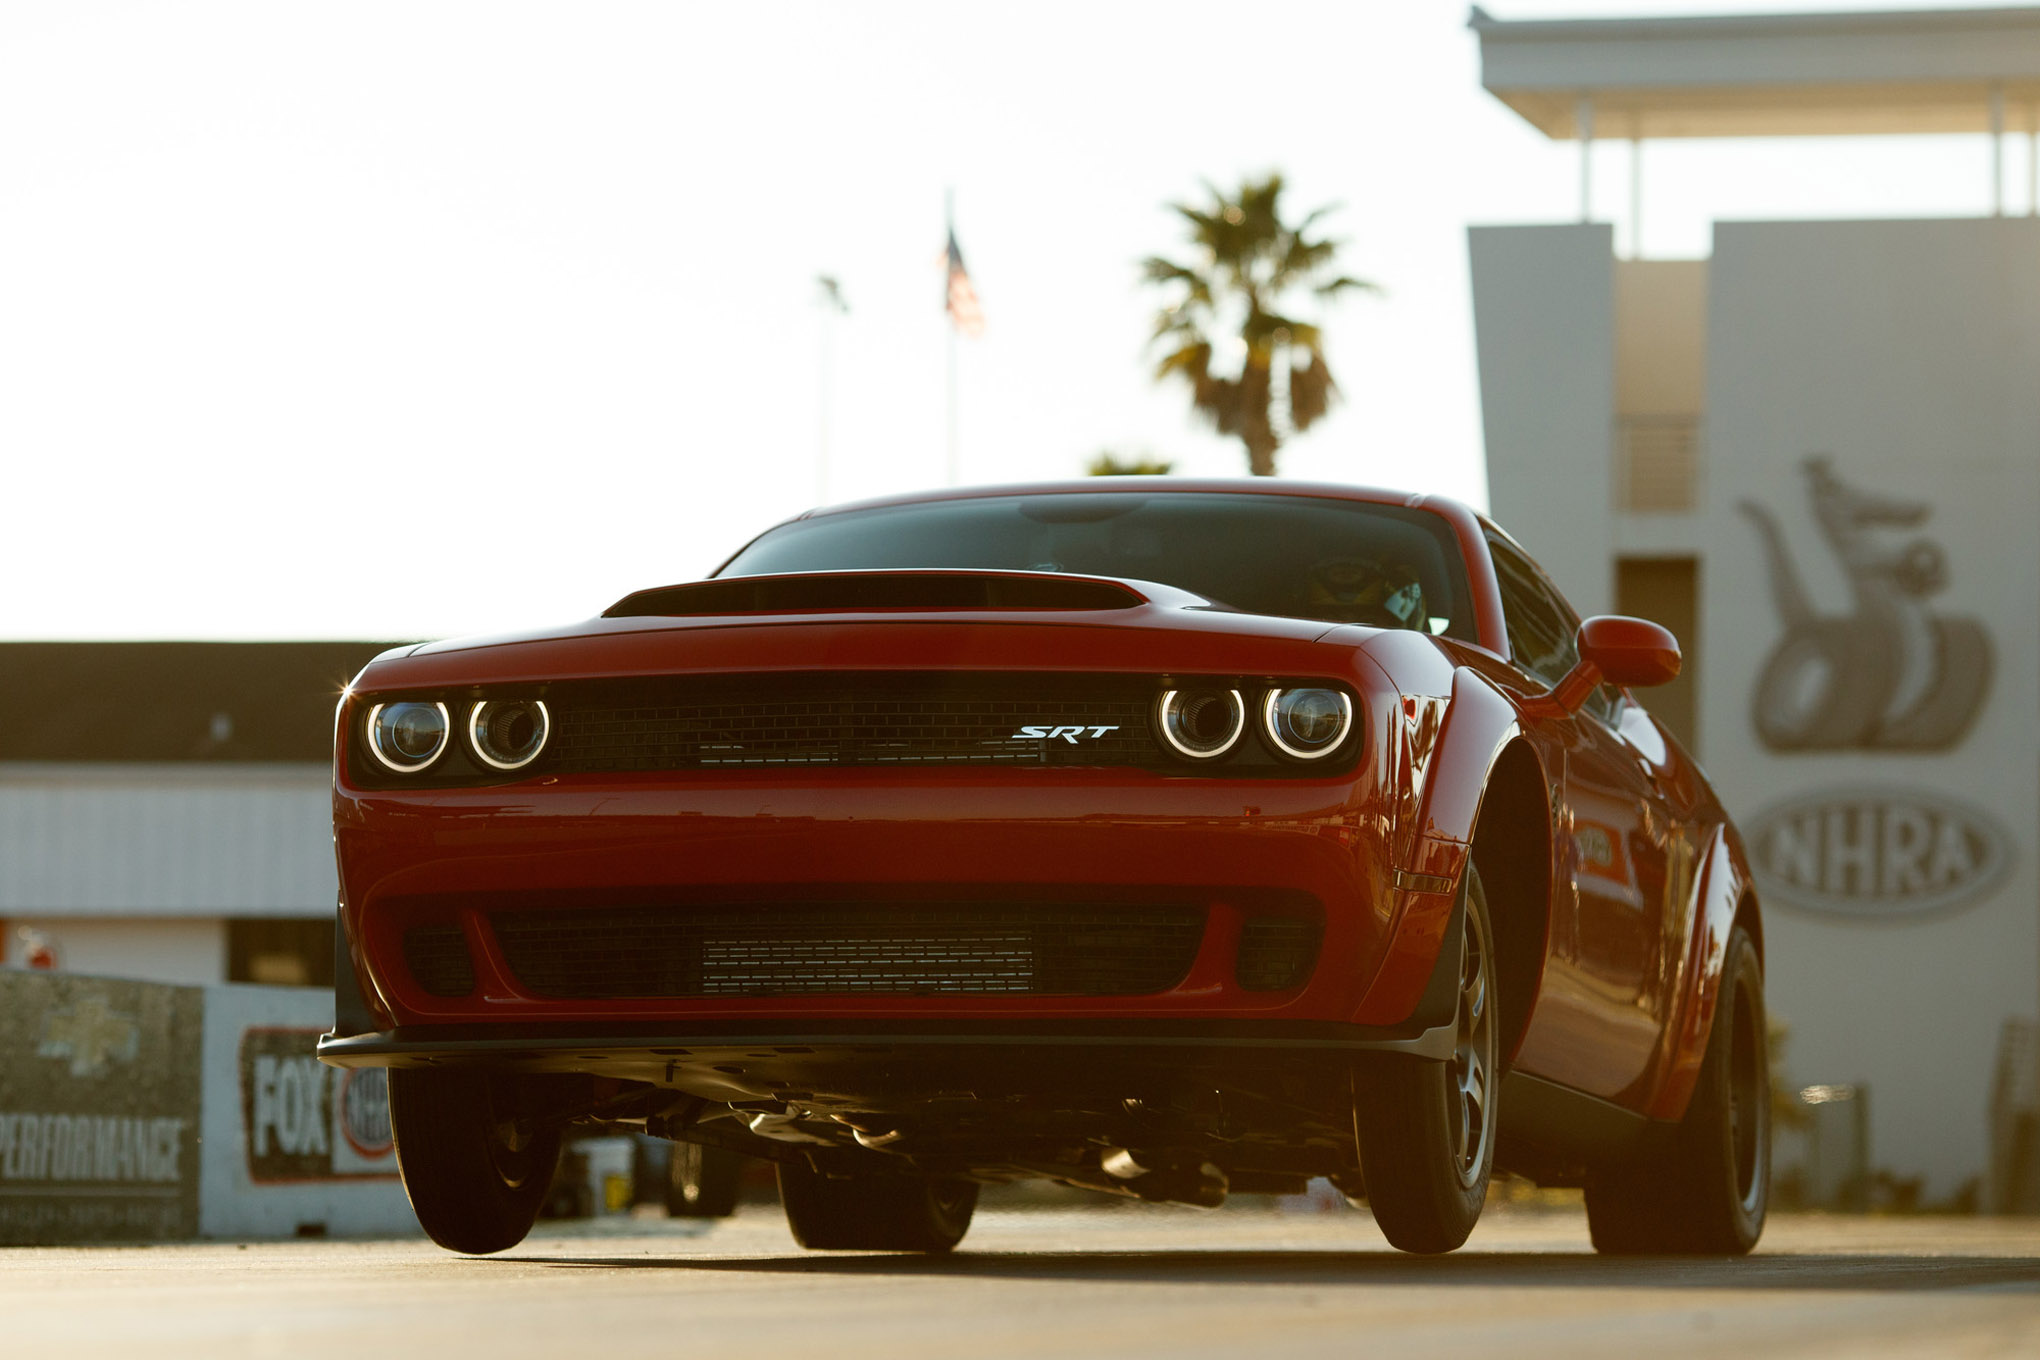 157-2018-dodge-demon.jpg